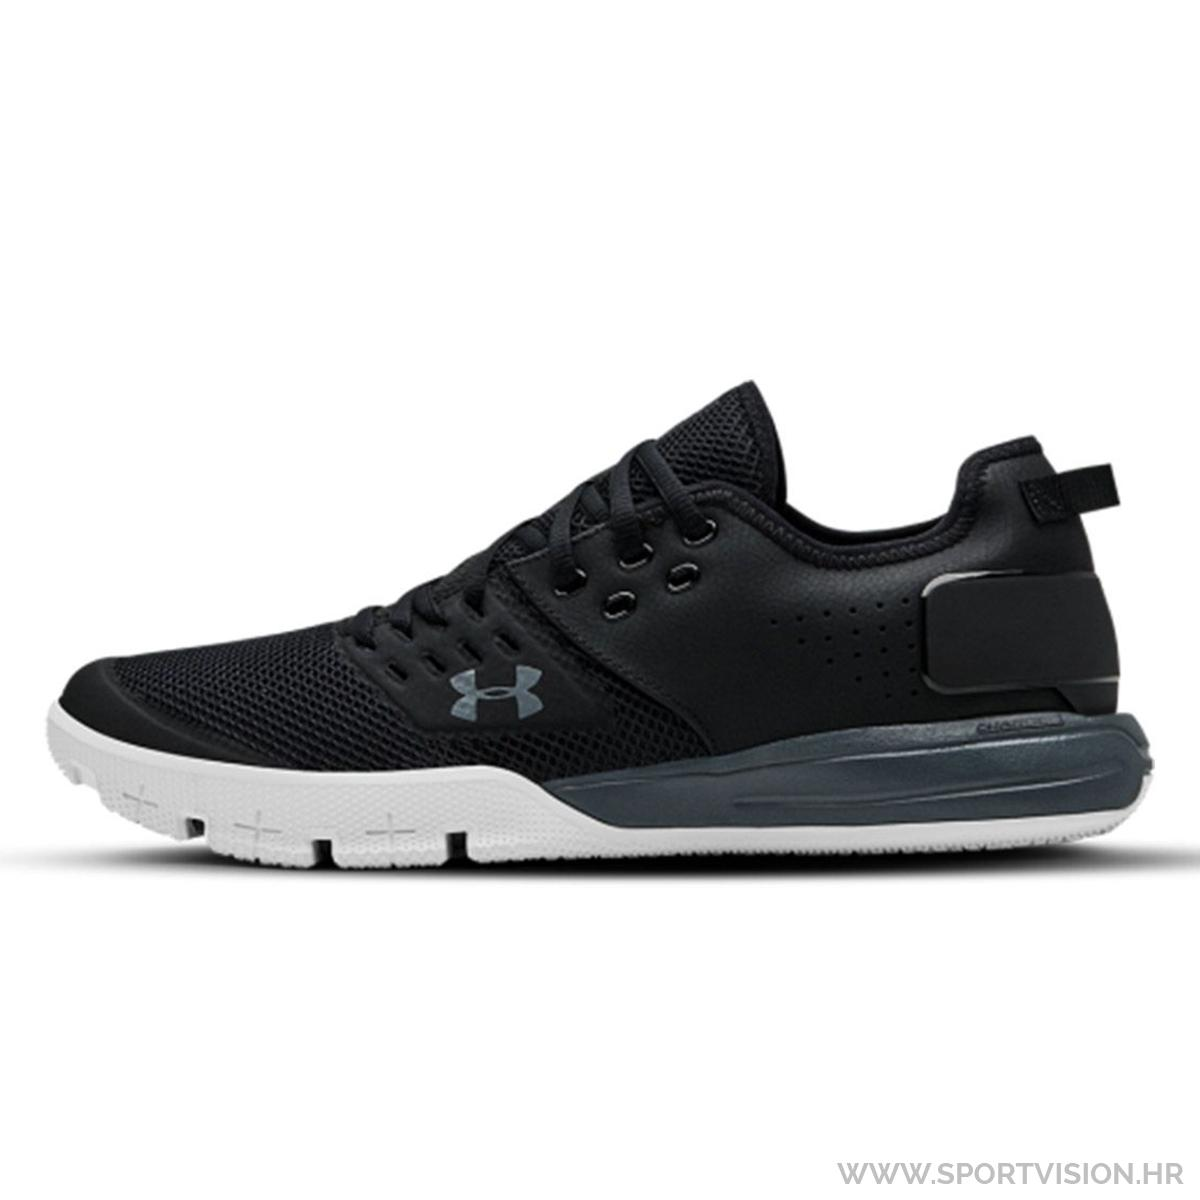 UNDER ARMOUR tenisice UA CHARGED ULTIMATE 3.0